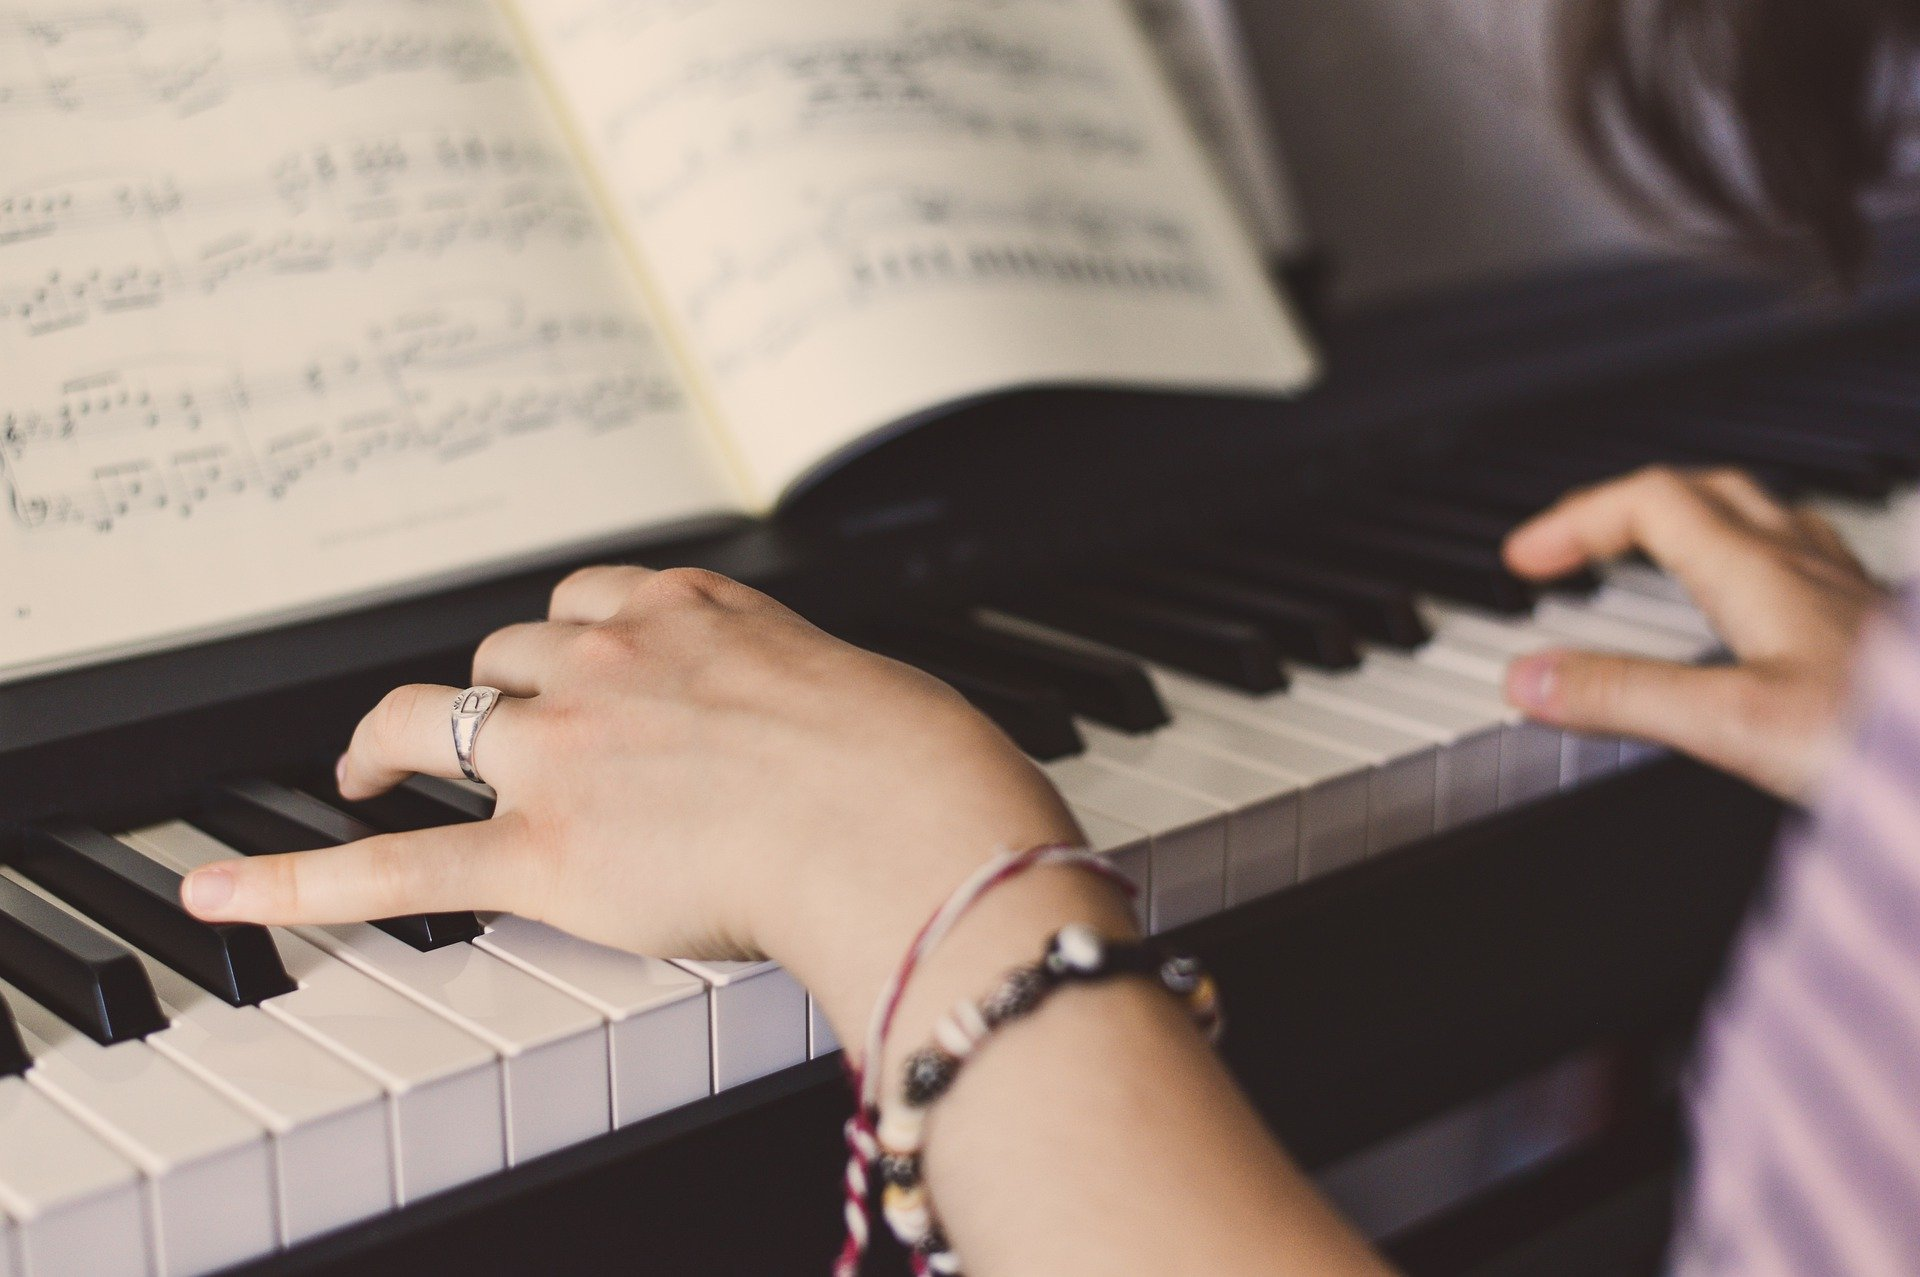 girls hands playing a piano with sheet music